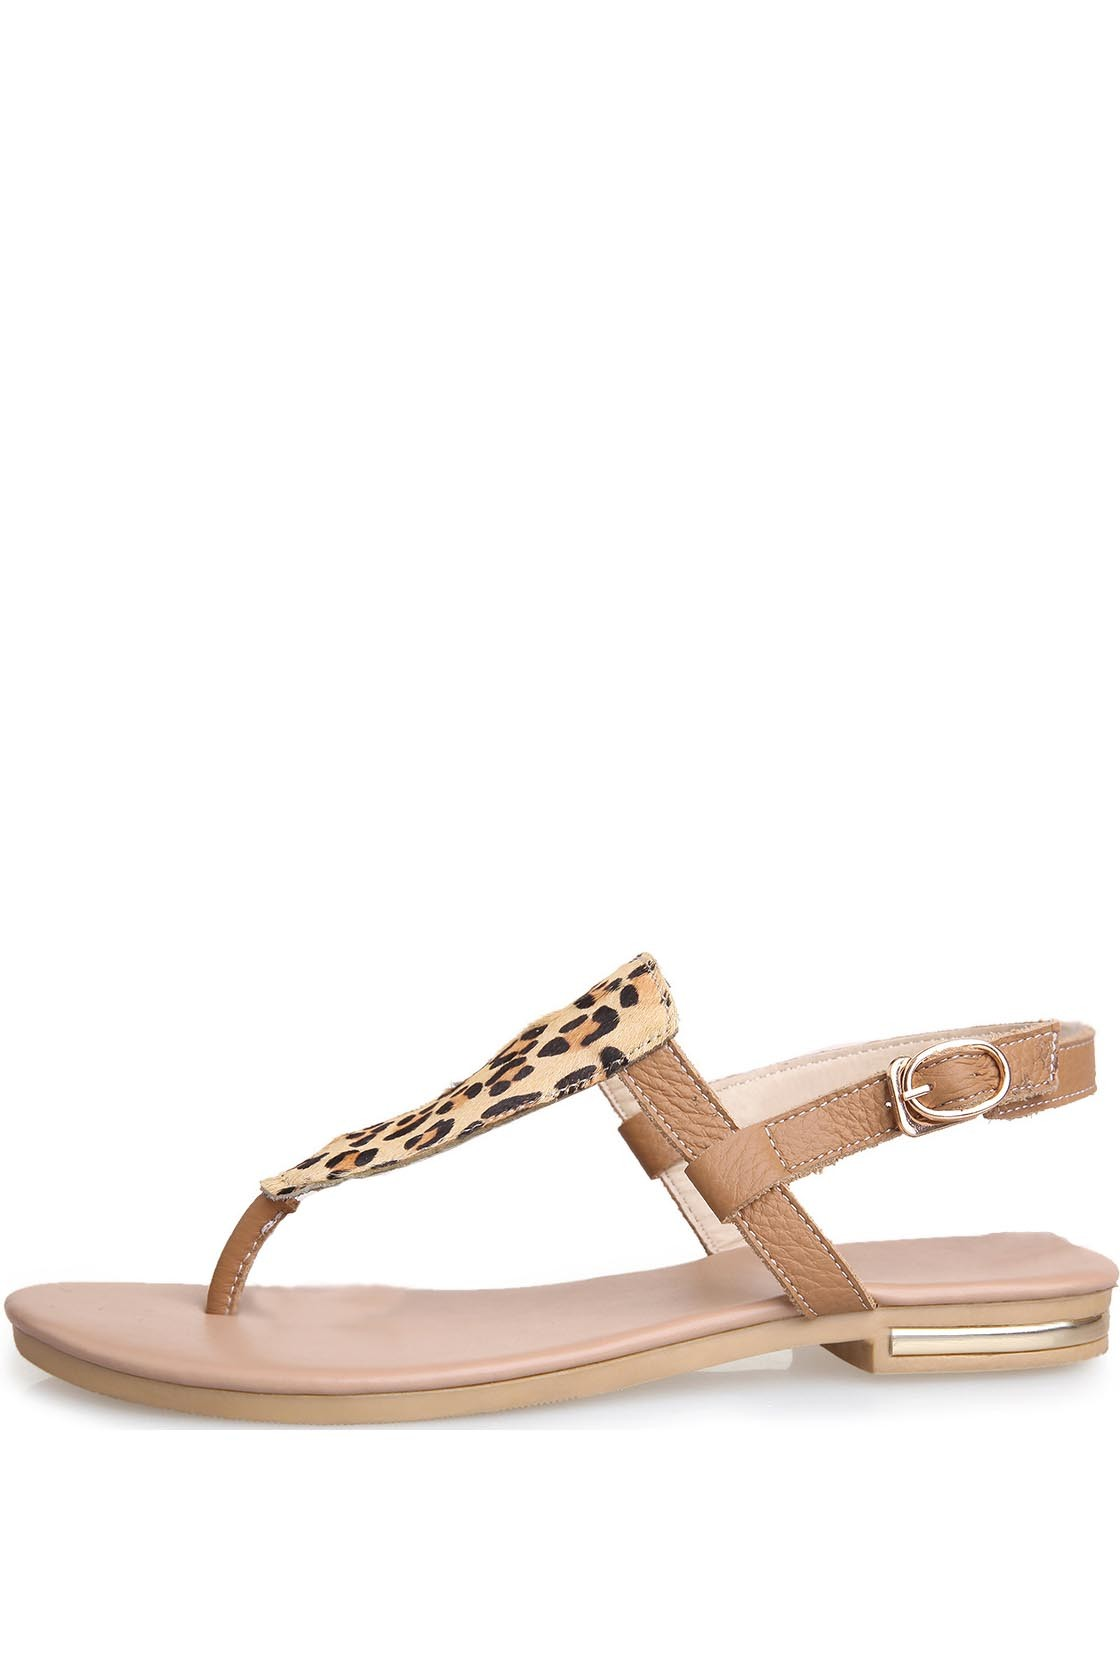 Apricot Faux Leather Leopard Print Thong Post Sandals